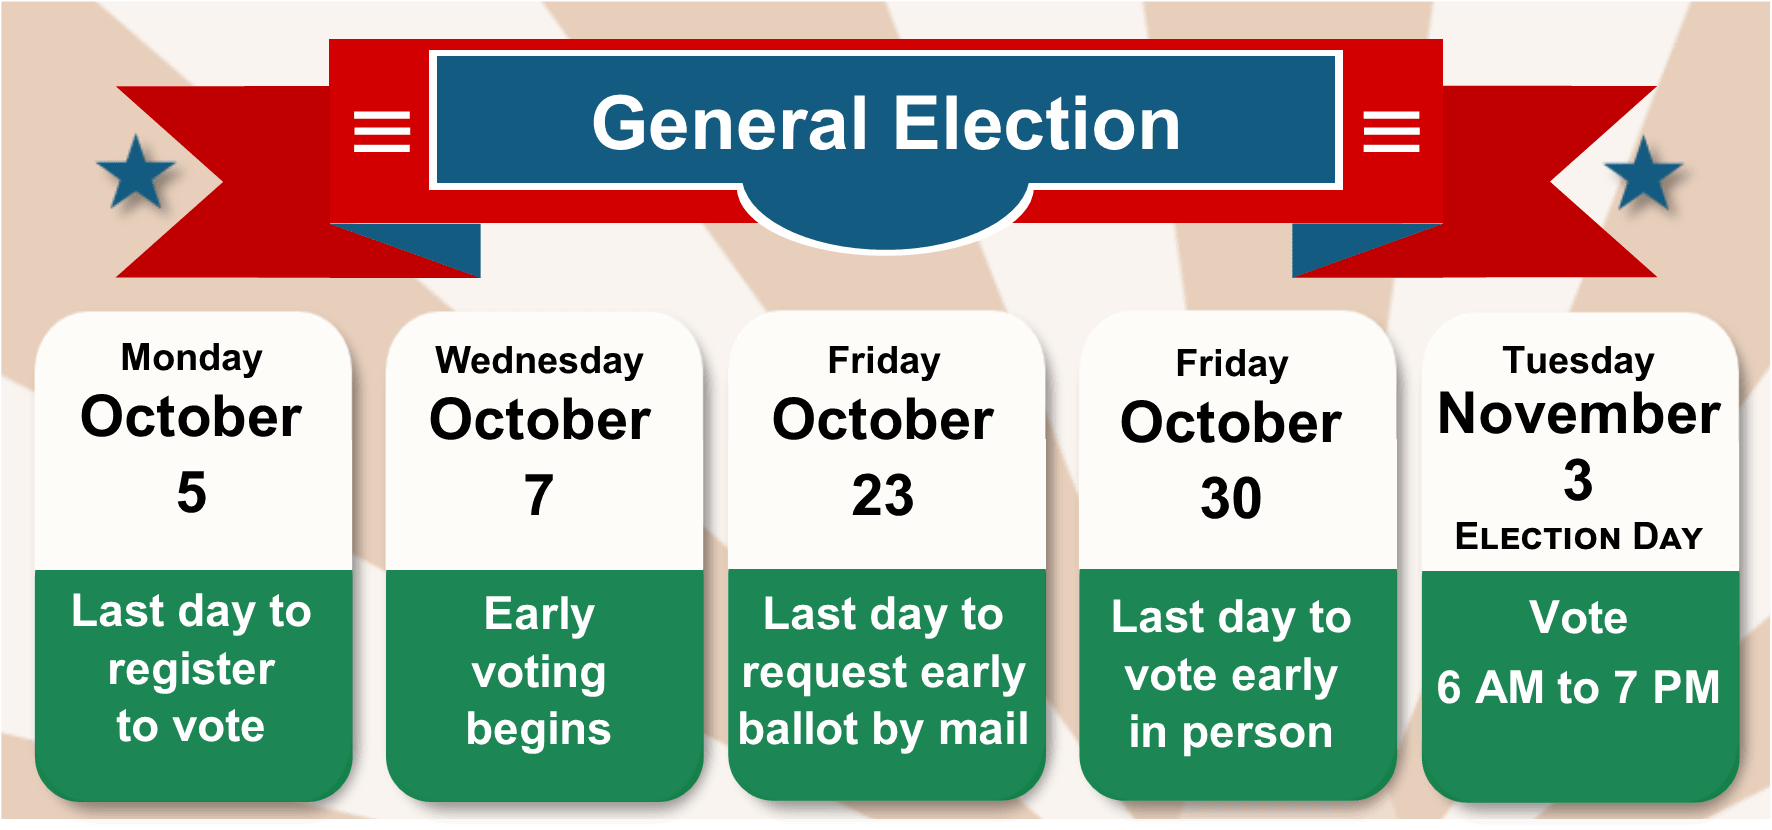 General Election Calendar Opens in new window